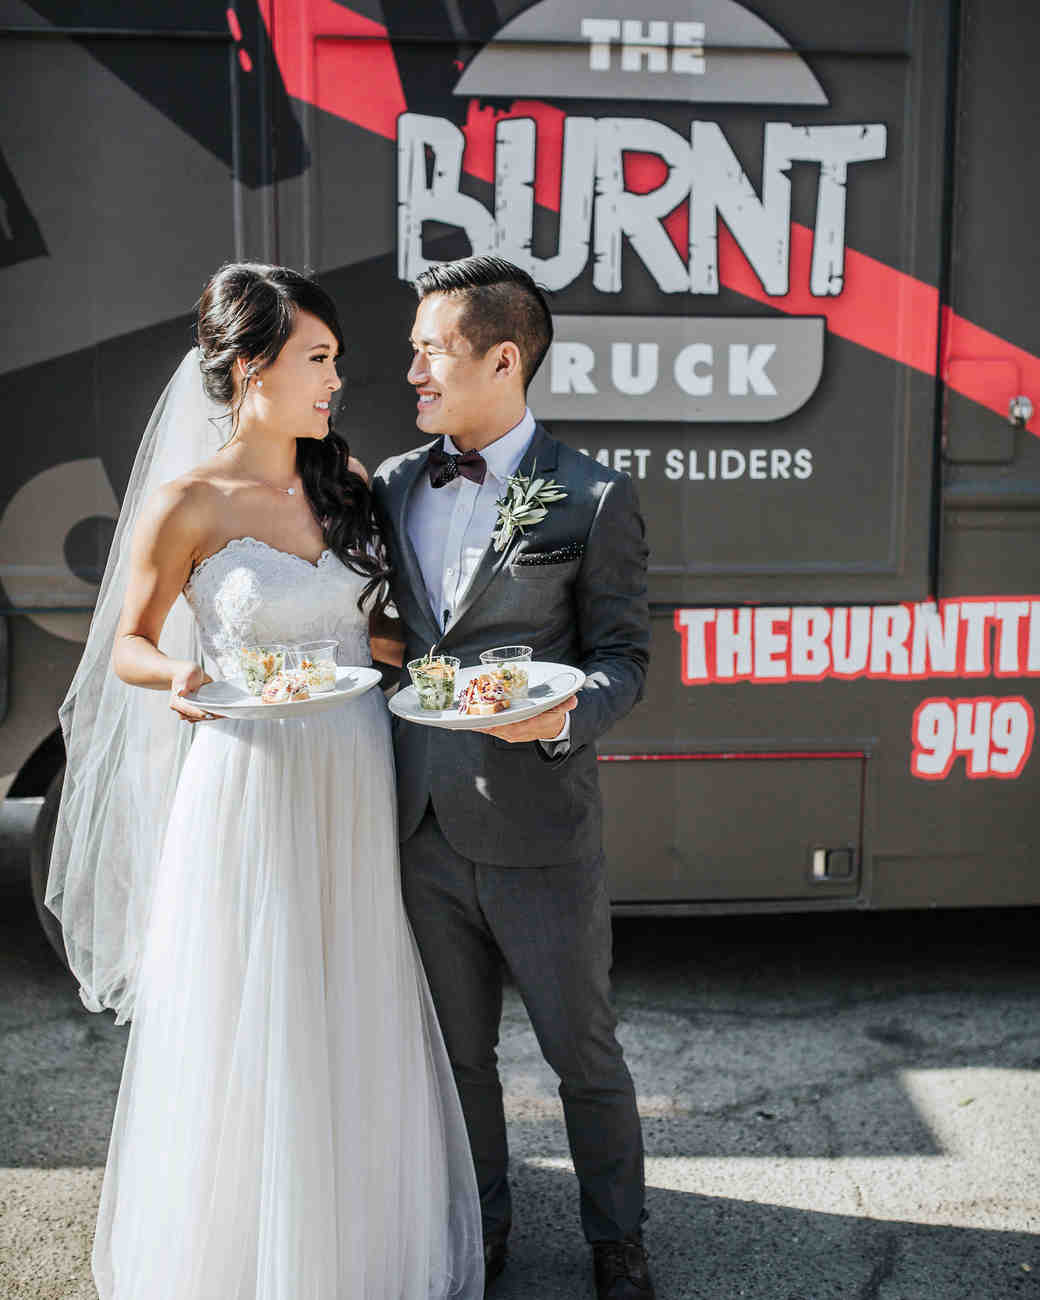 burnt food truck bride groom mobile appetizers